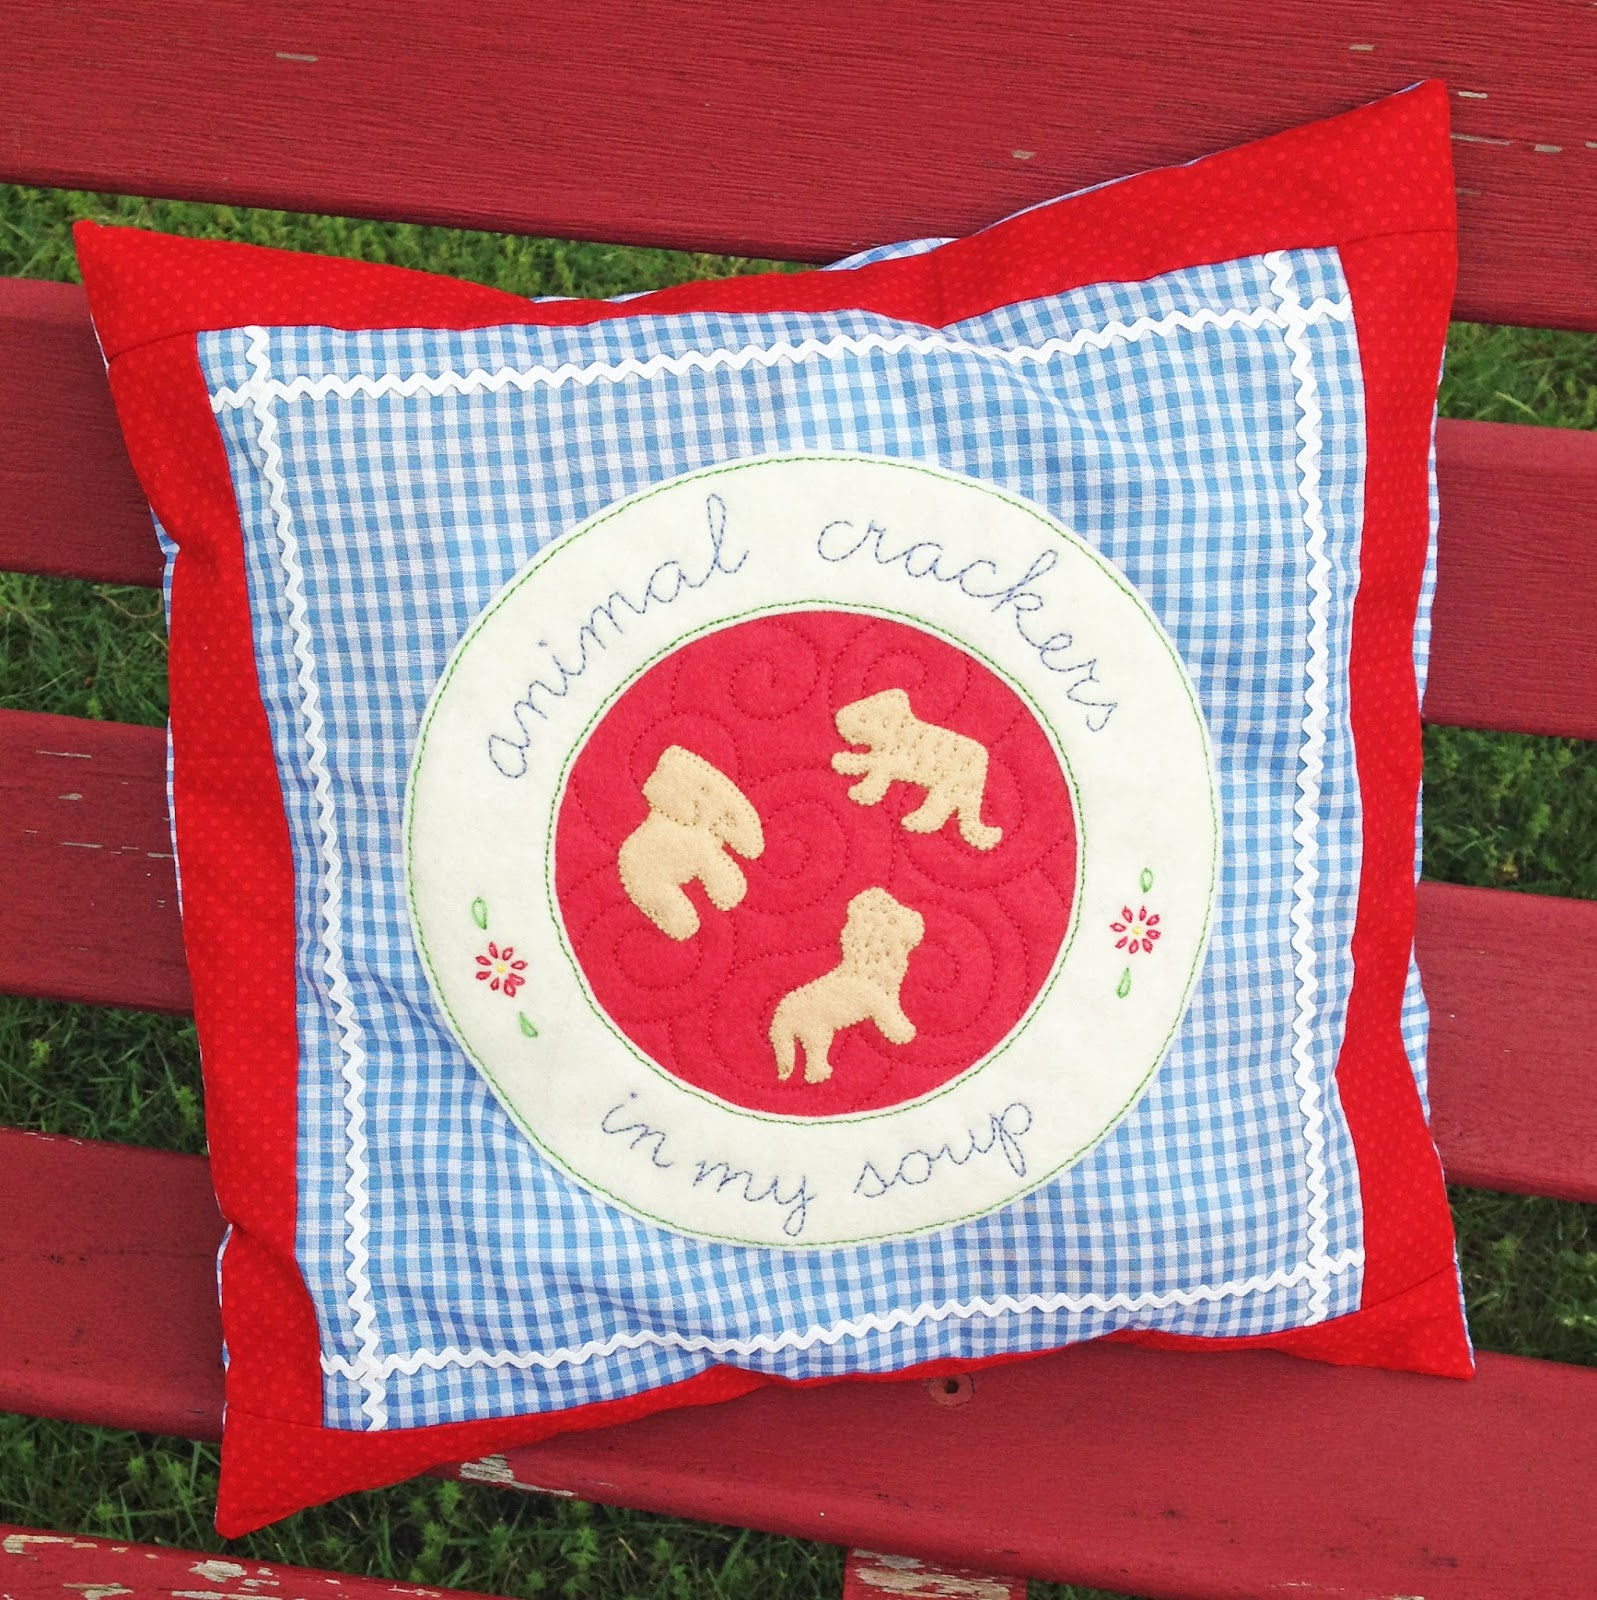 Kbb Crafts Stitches Animal Crackers In My Soup Pillow